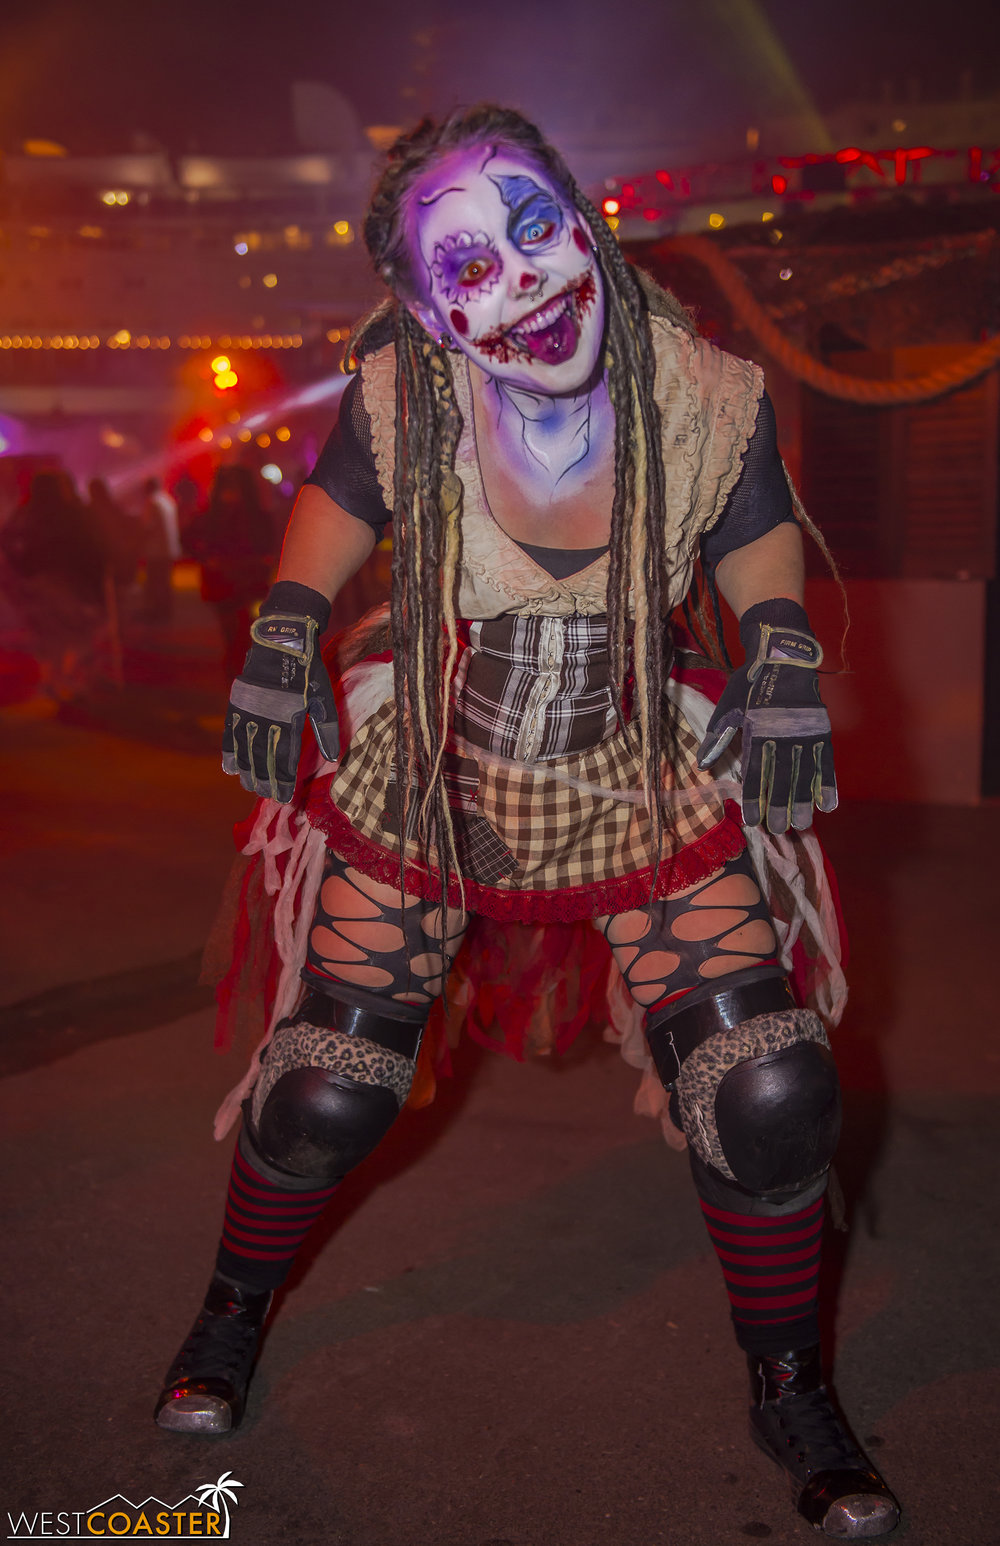 Sliders Unite provided the opportunity for non-Dark Harbor monsters, such as Sindel from Knott's Scary Farm's The Hollow, to appear in a wholly unique-for-her setting.